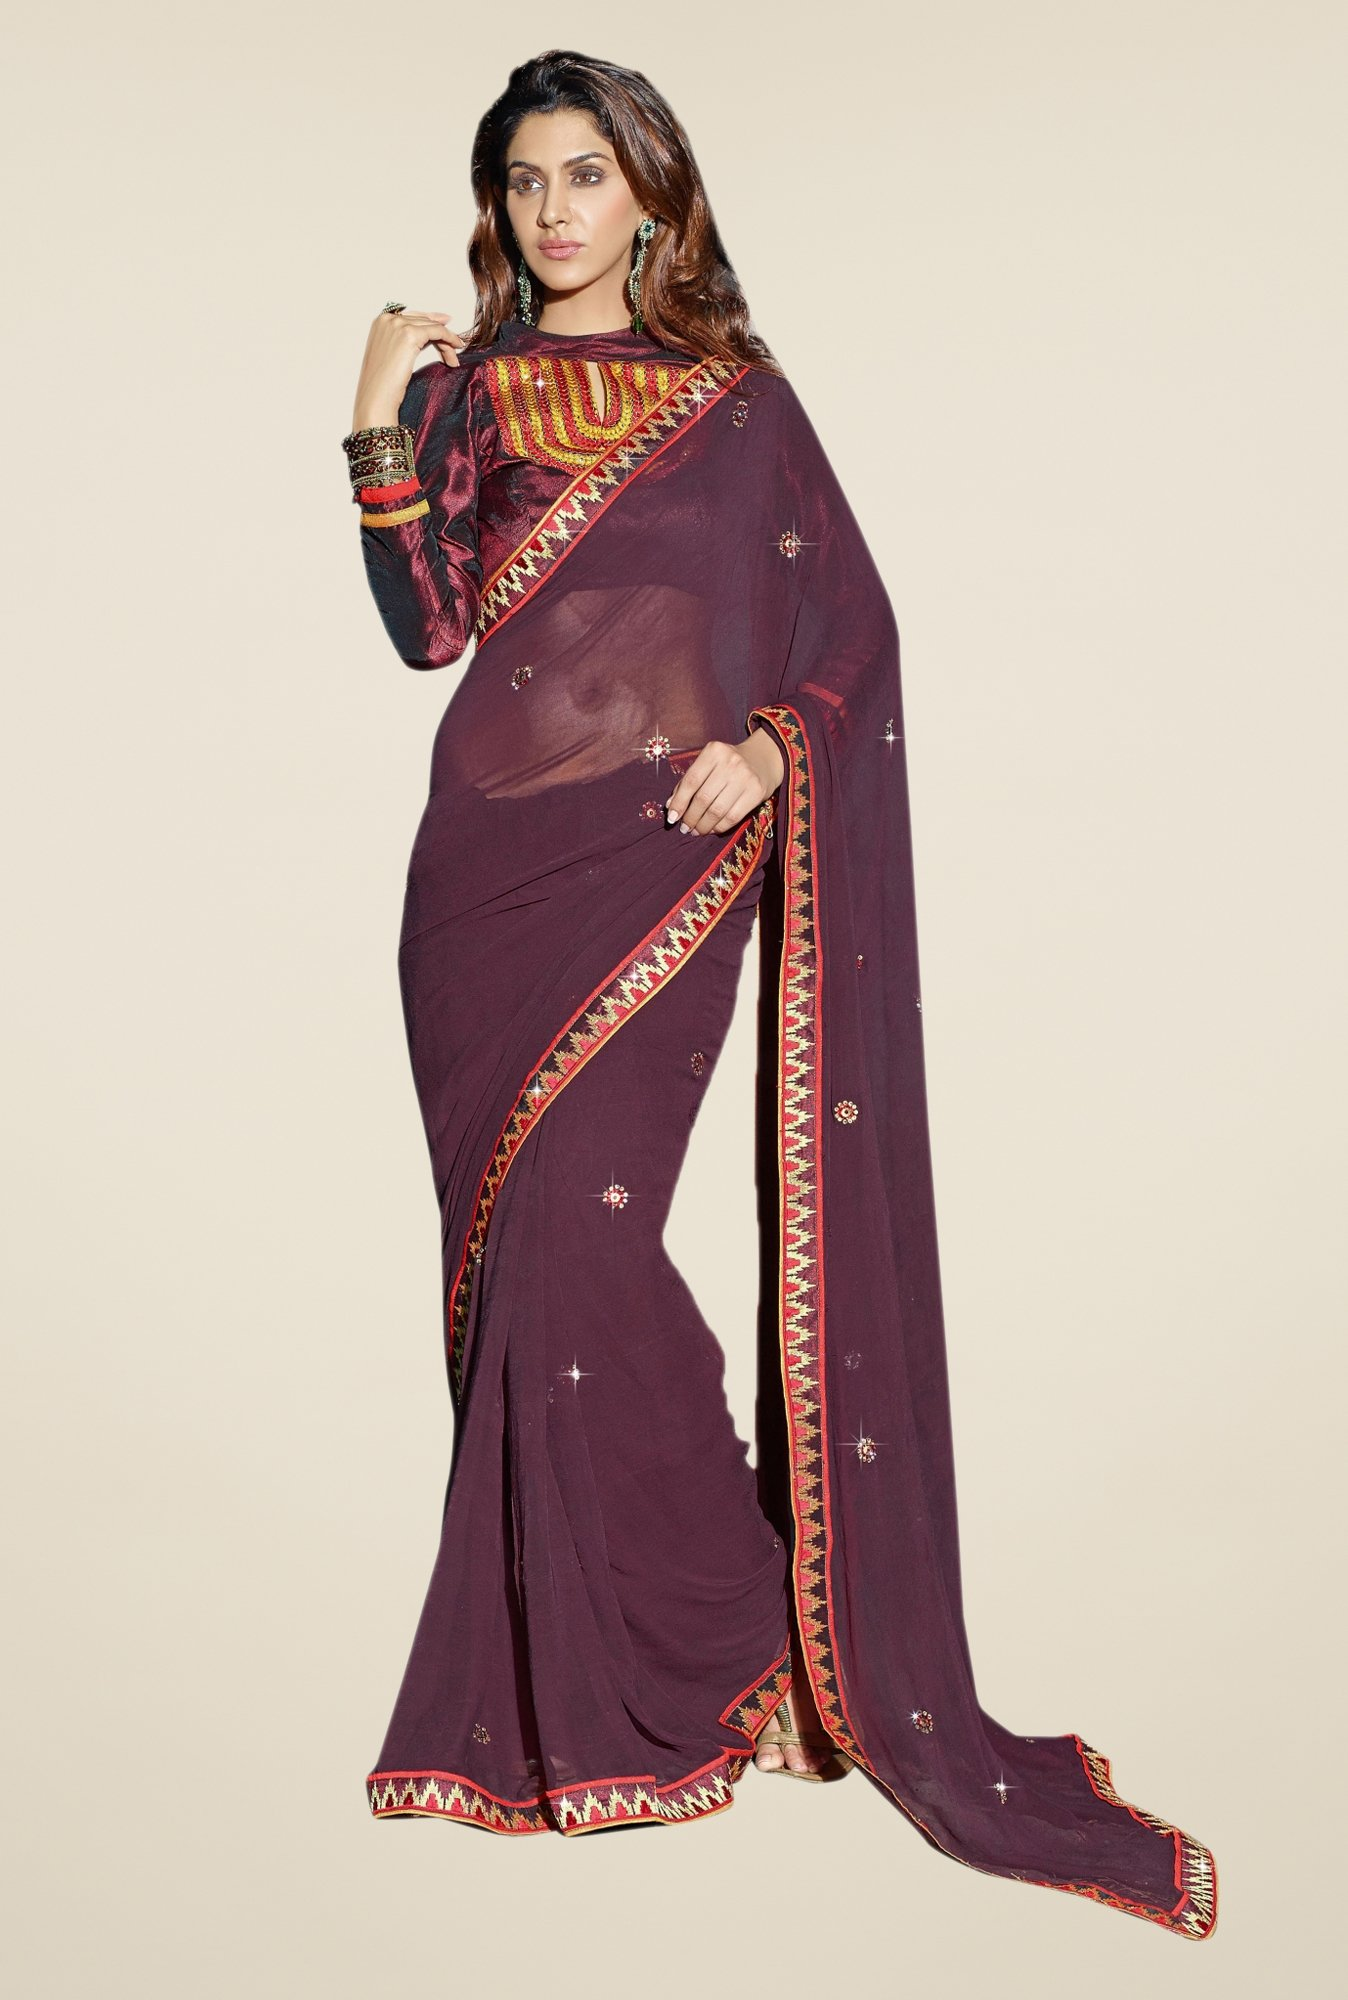 Triveni Purple Solid Faux Georgette Dry Clean Saree